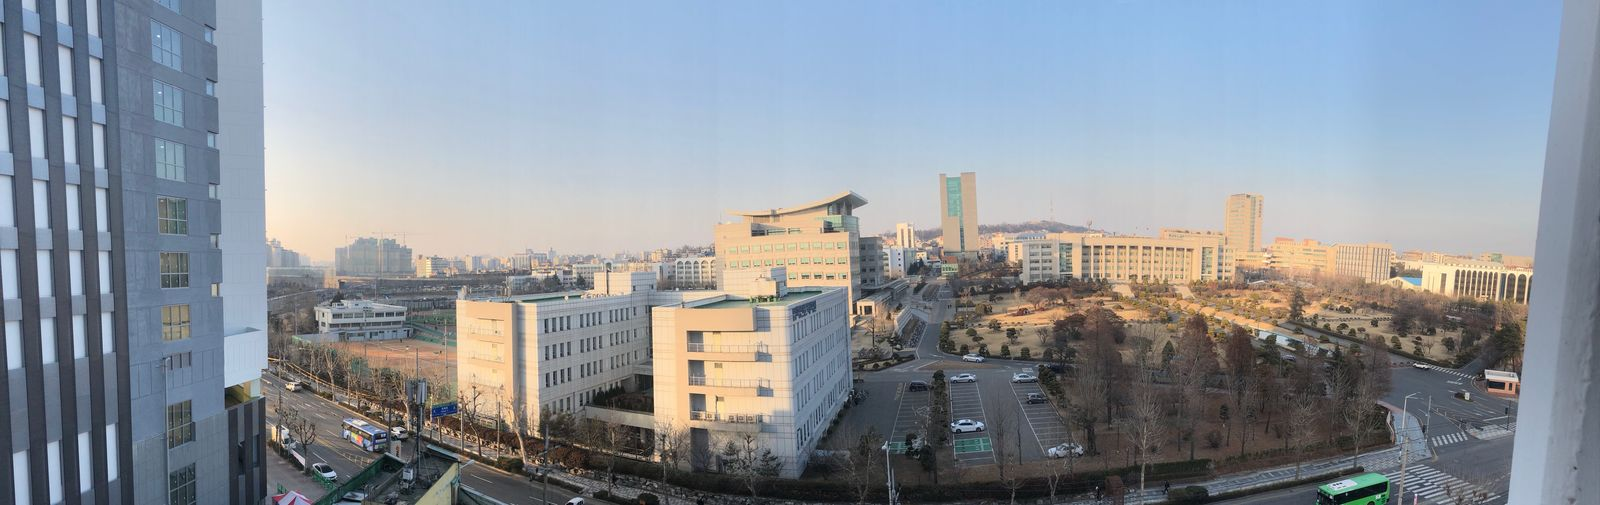 Korea South Korea Incheon University InHa Univ. EyeEm Selects Architecture Building Exterior Cityscape Built Structure Skyscraper City Clear Sky Urban Skyline No People Day Sky Outdoors